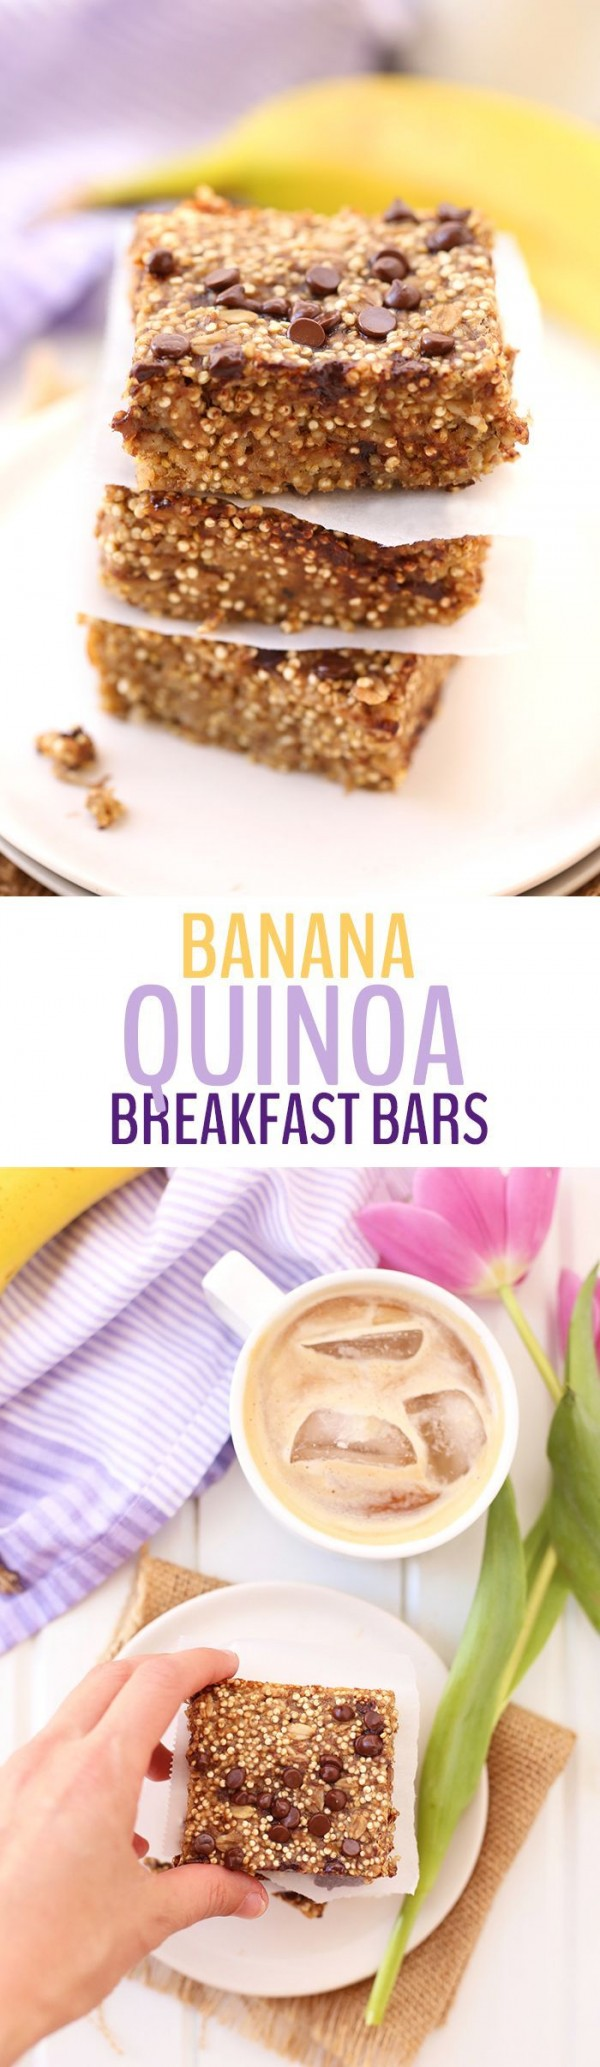 Get the recipe Banana Quinoa Breakfast Bars @recipes_to_go